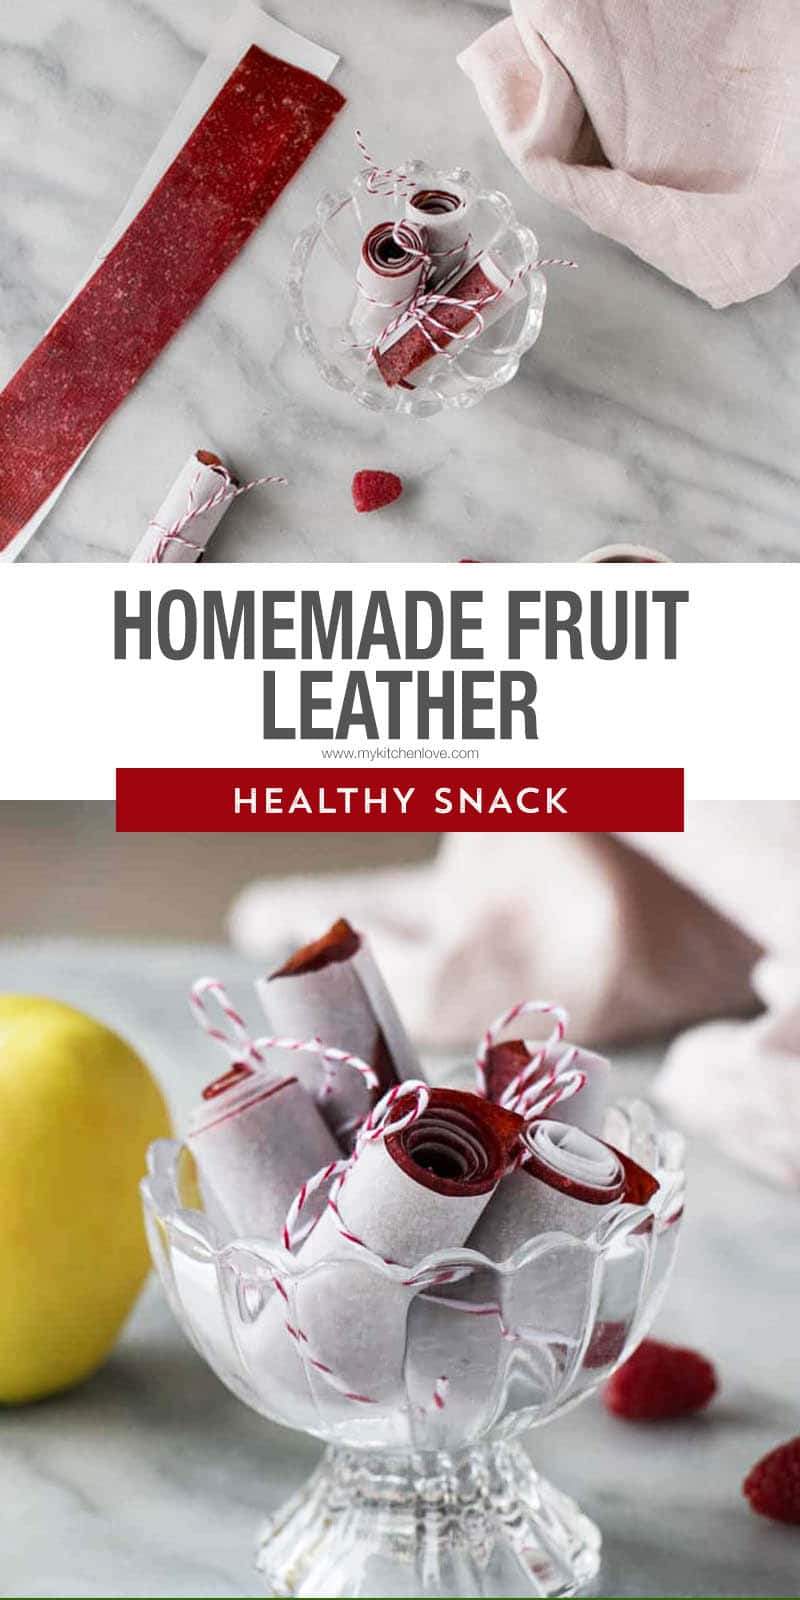 Easy Homemade Fruit Leather plus 10 other healthy snacks for back-to-school. This Raspberry Apple Fruit Leather recipe is always a kid (and adult) favourite! via @mykitchenlove